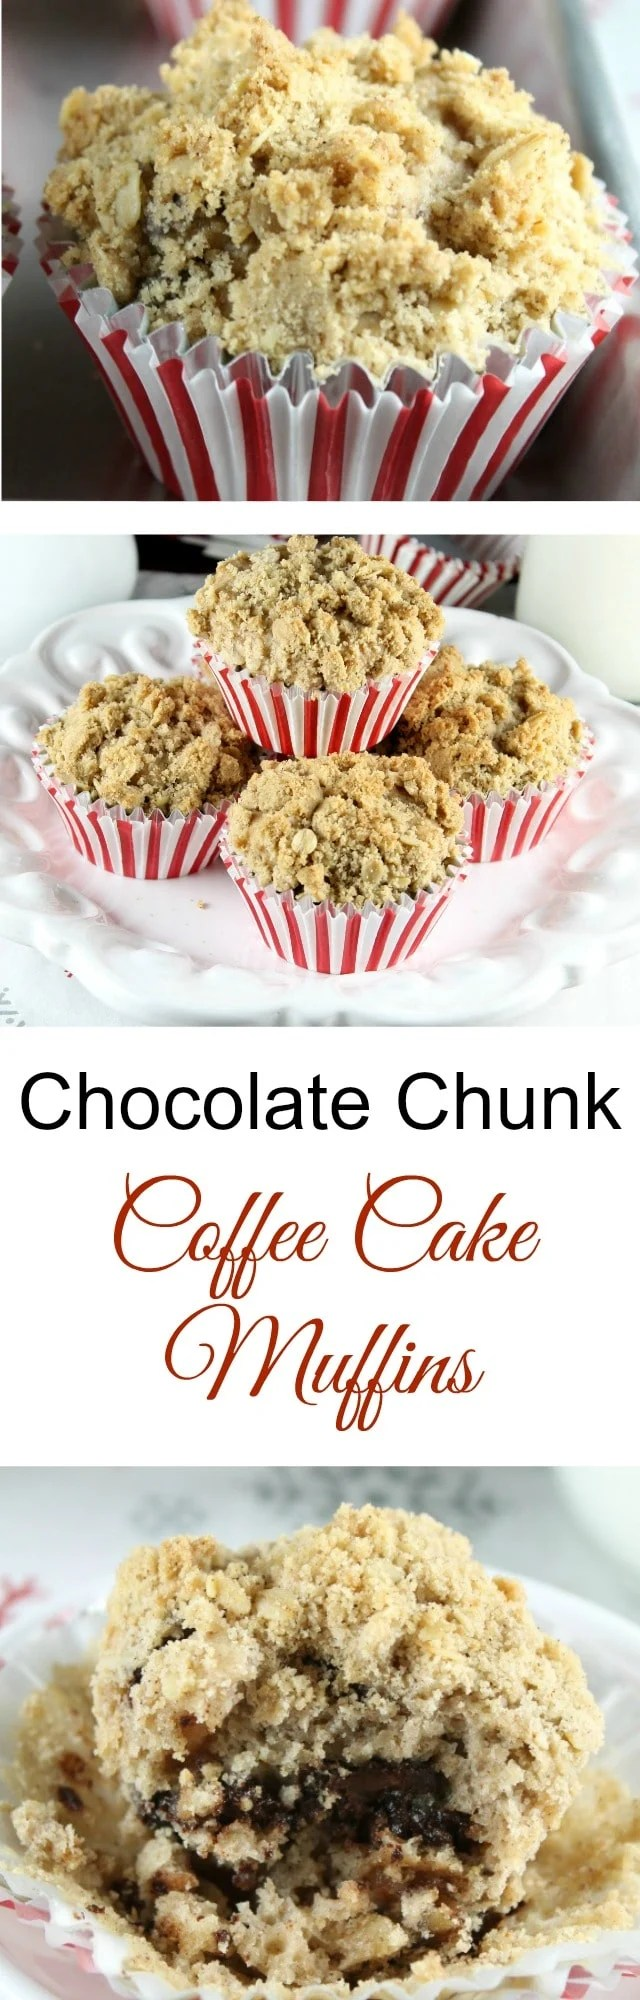 Recipe for Chocolate Chunk Coffee Cake Muffins made with Red Star Yeast Platinum ~ MissintheKitchen.com #sponsored